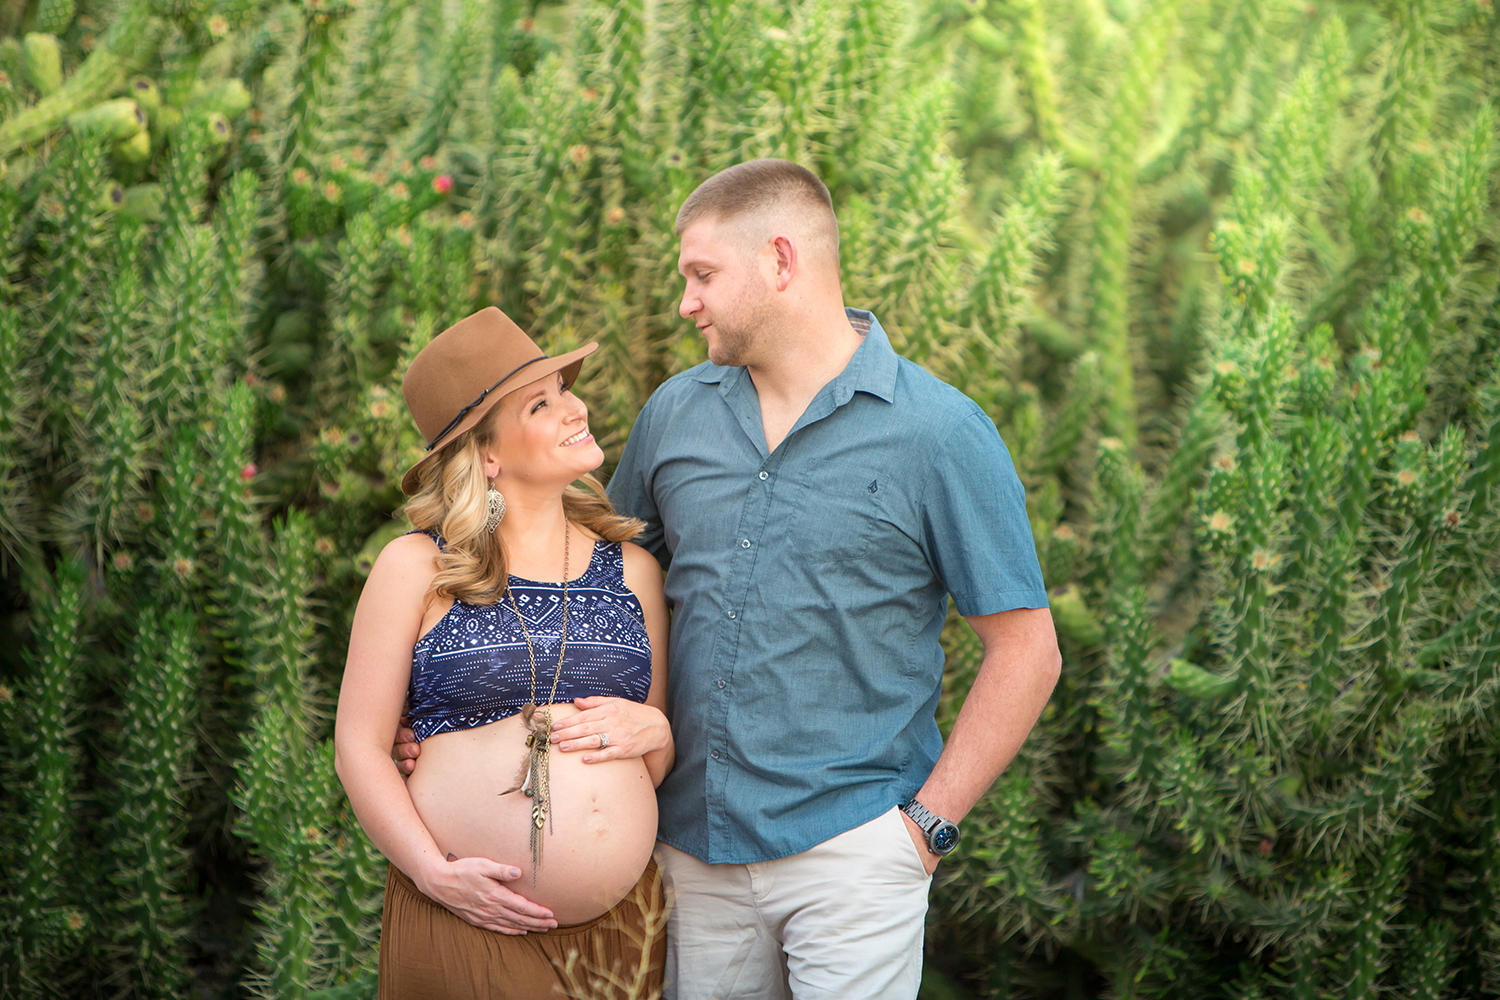 Dena_Rooney_Maternity_Portraits_012.jpg